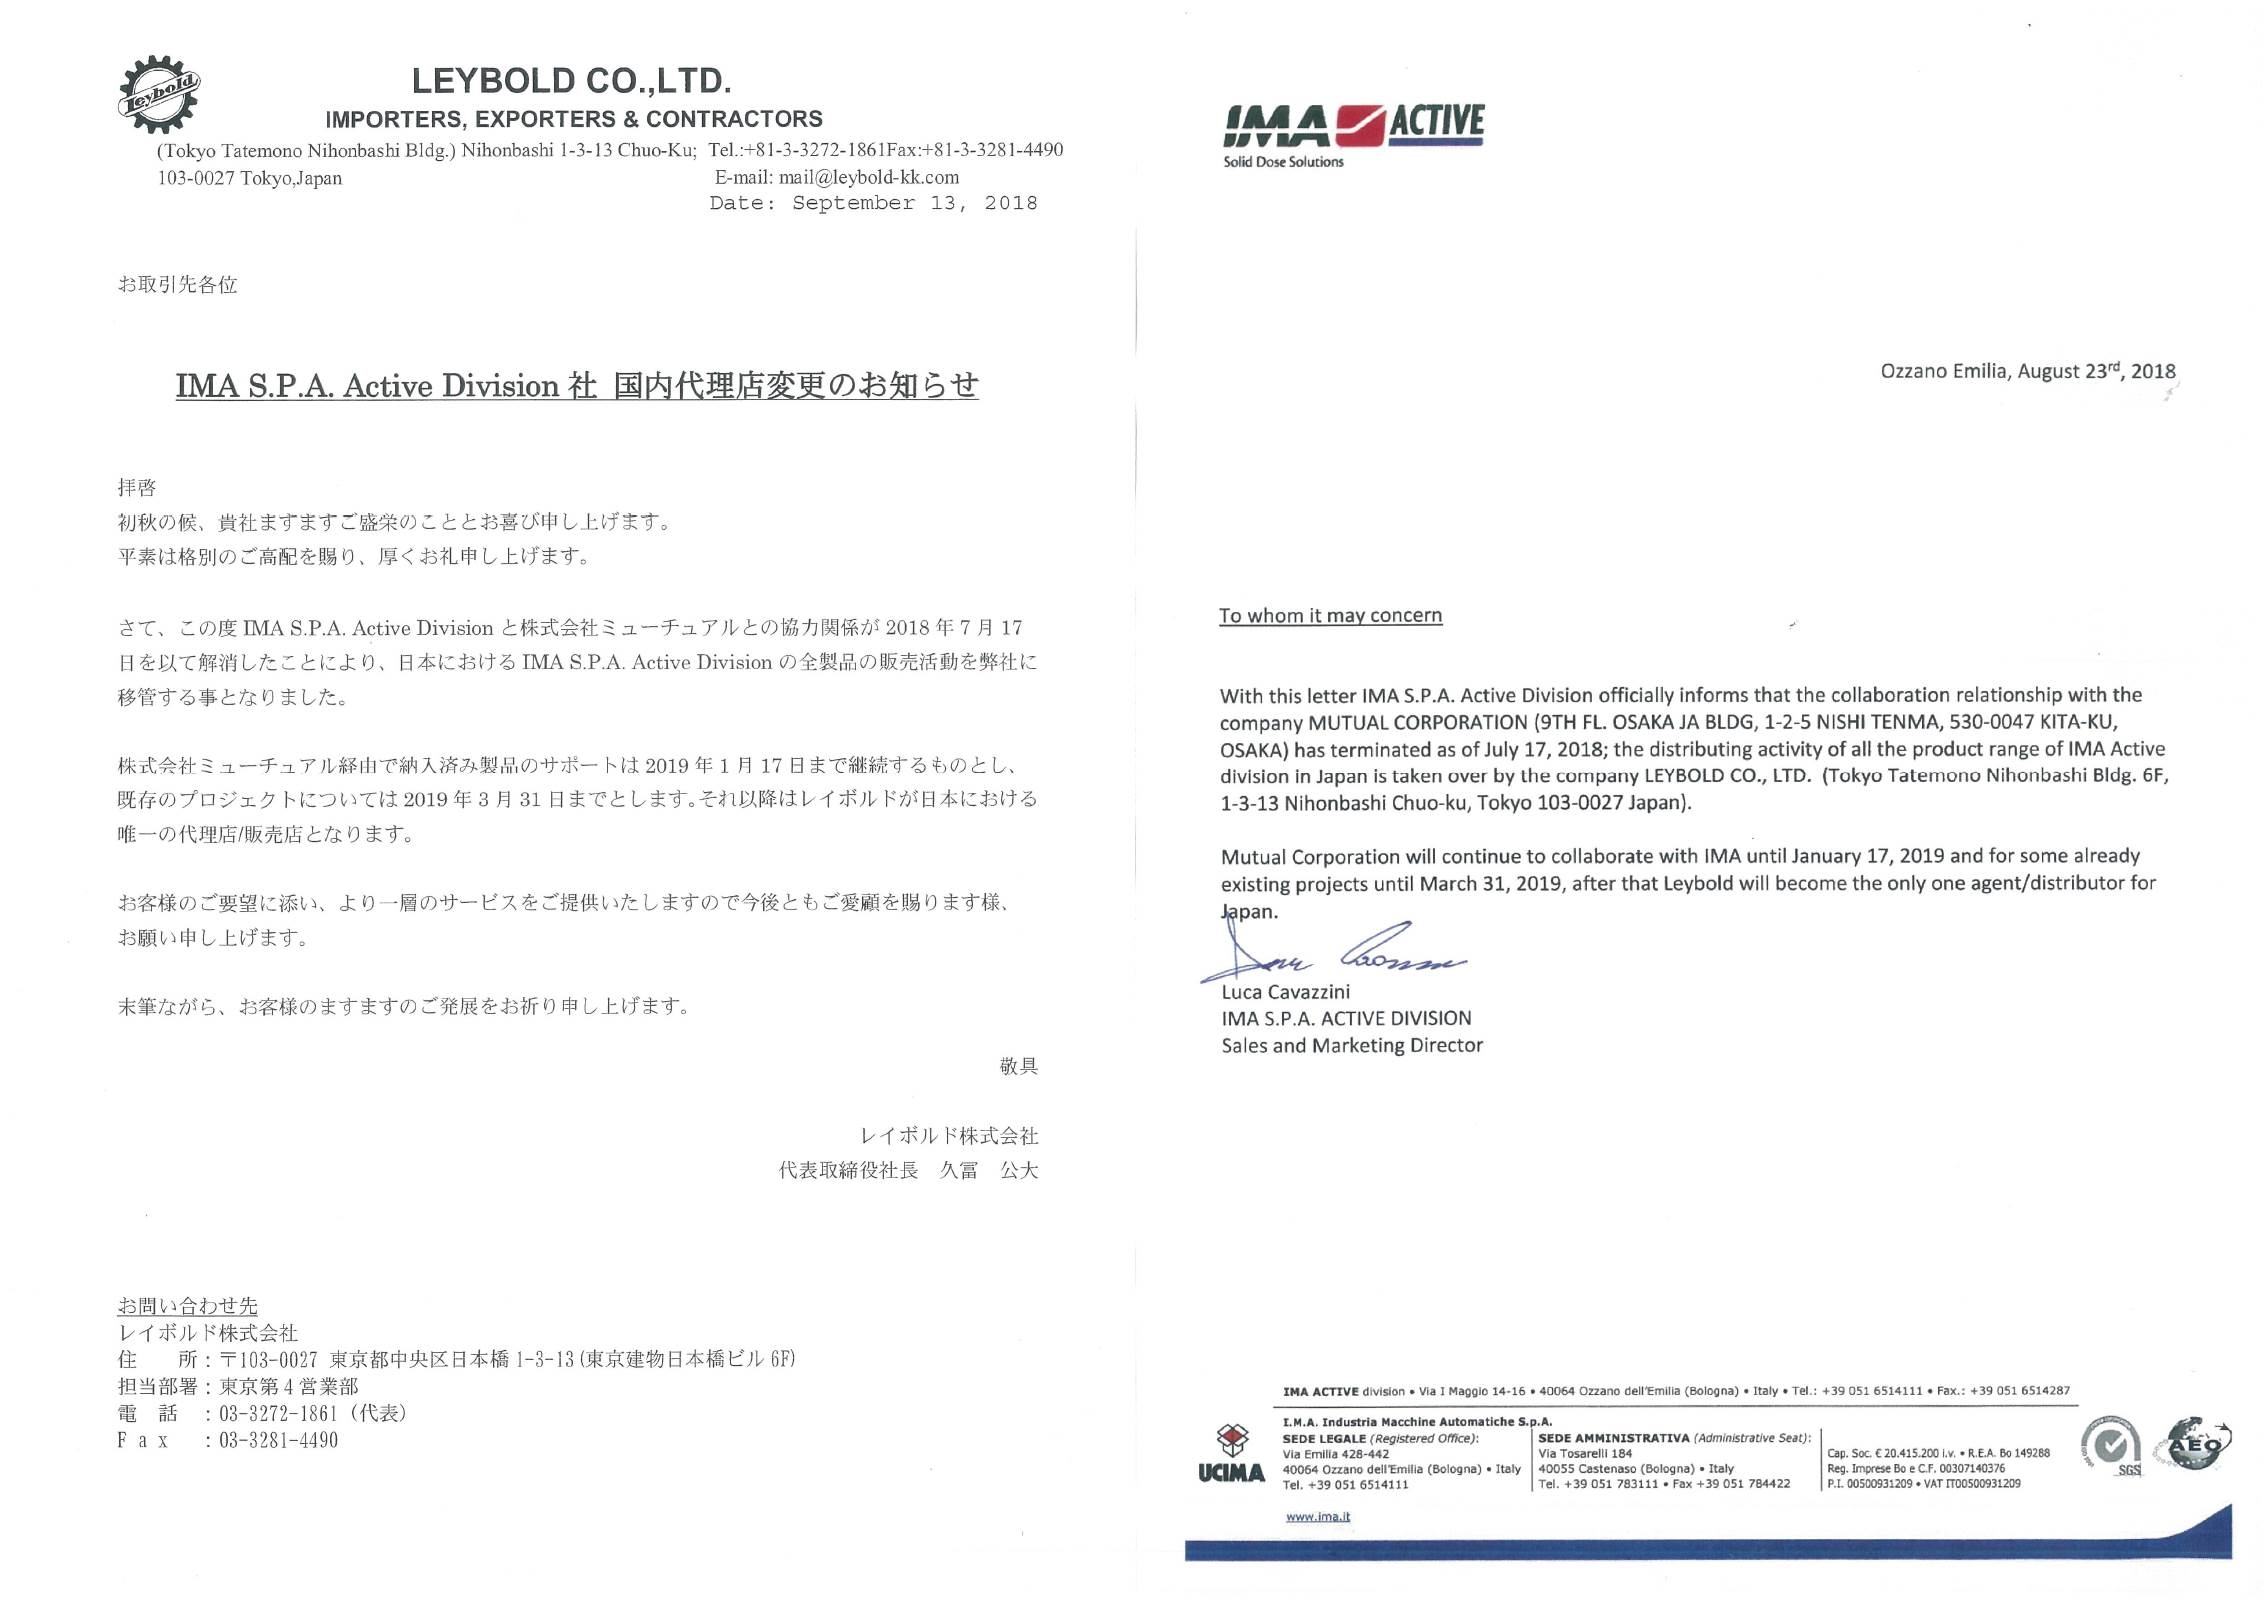 IMA S.P.A. Active Division社 国内代理店変更のお知らせ